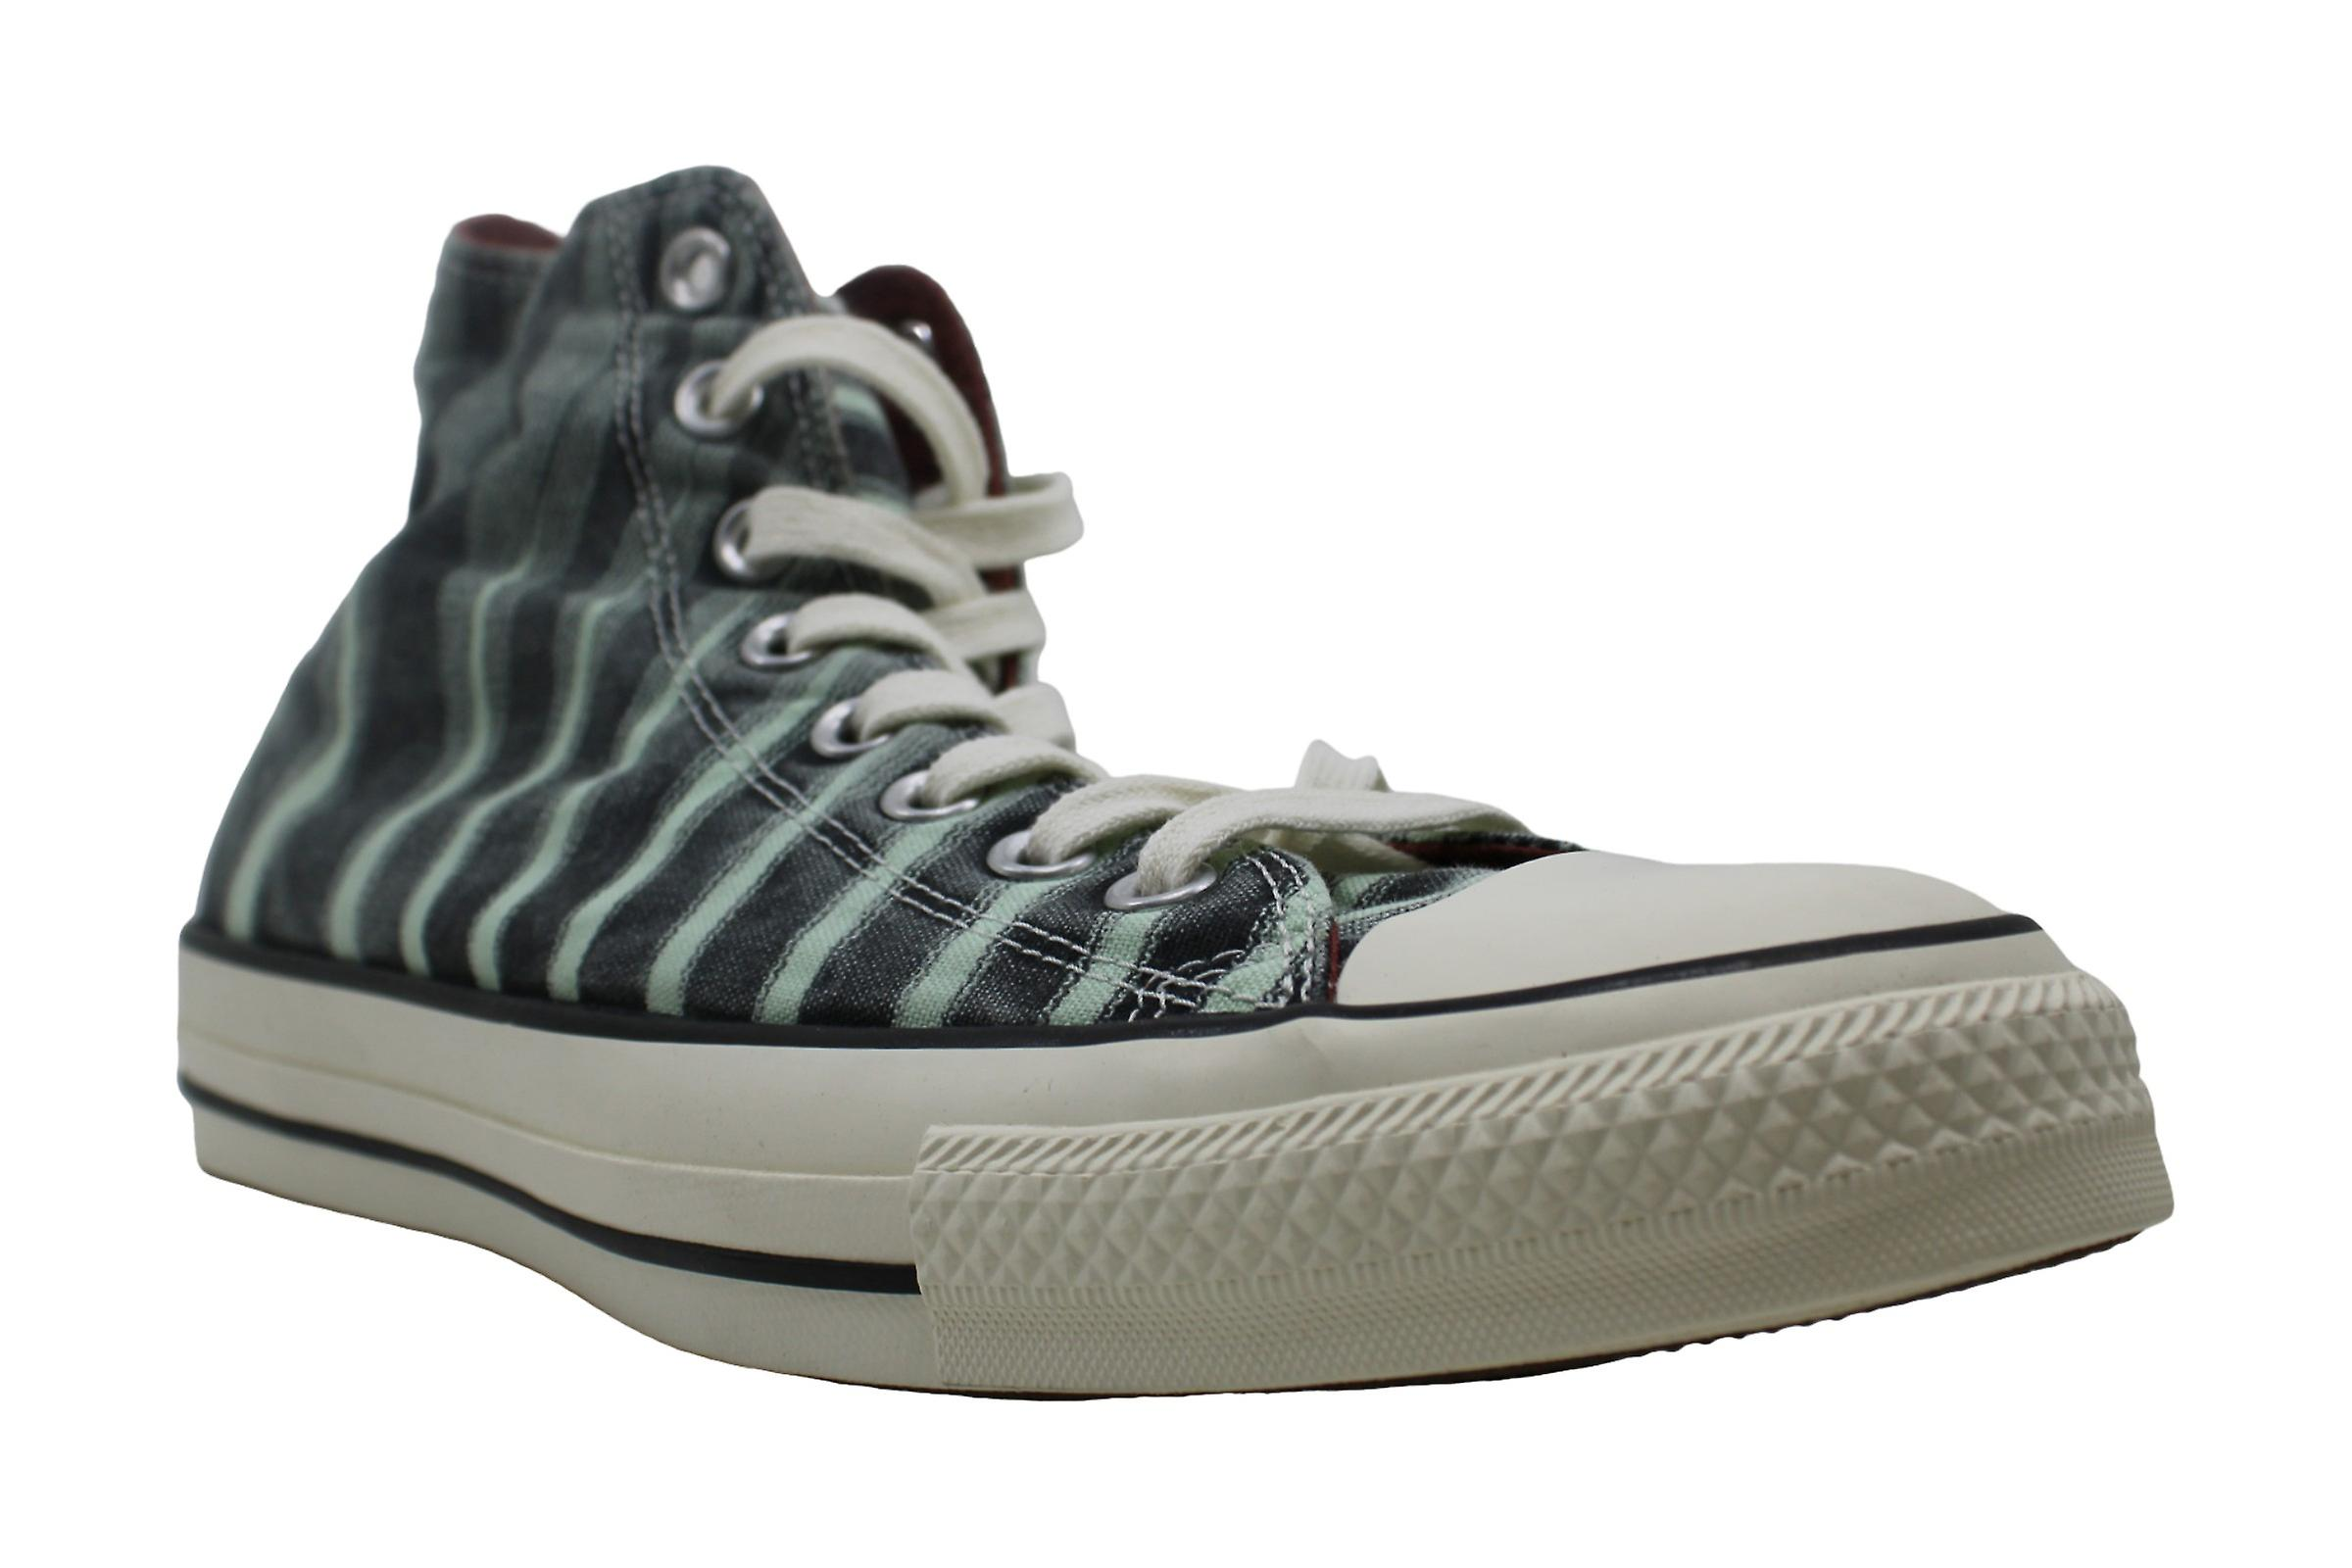 Converse Kobiety Chuck Taylor All Star ll High Low Top Lace Up Fashion Sneakers kiO1t